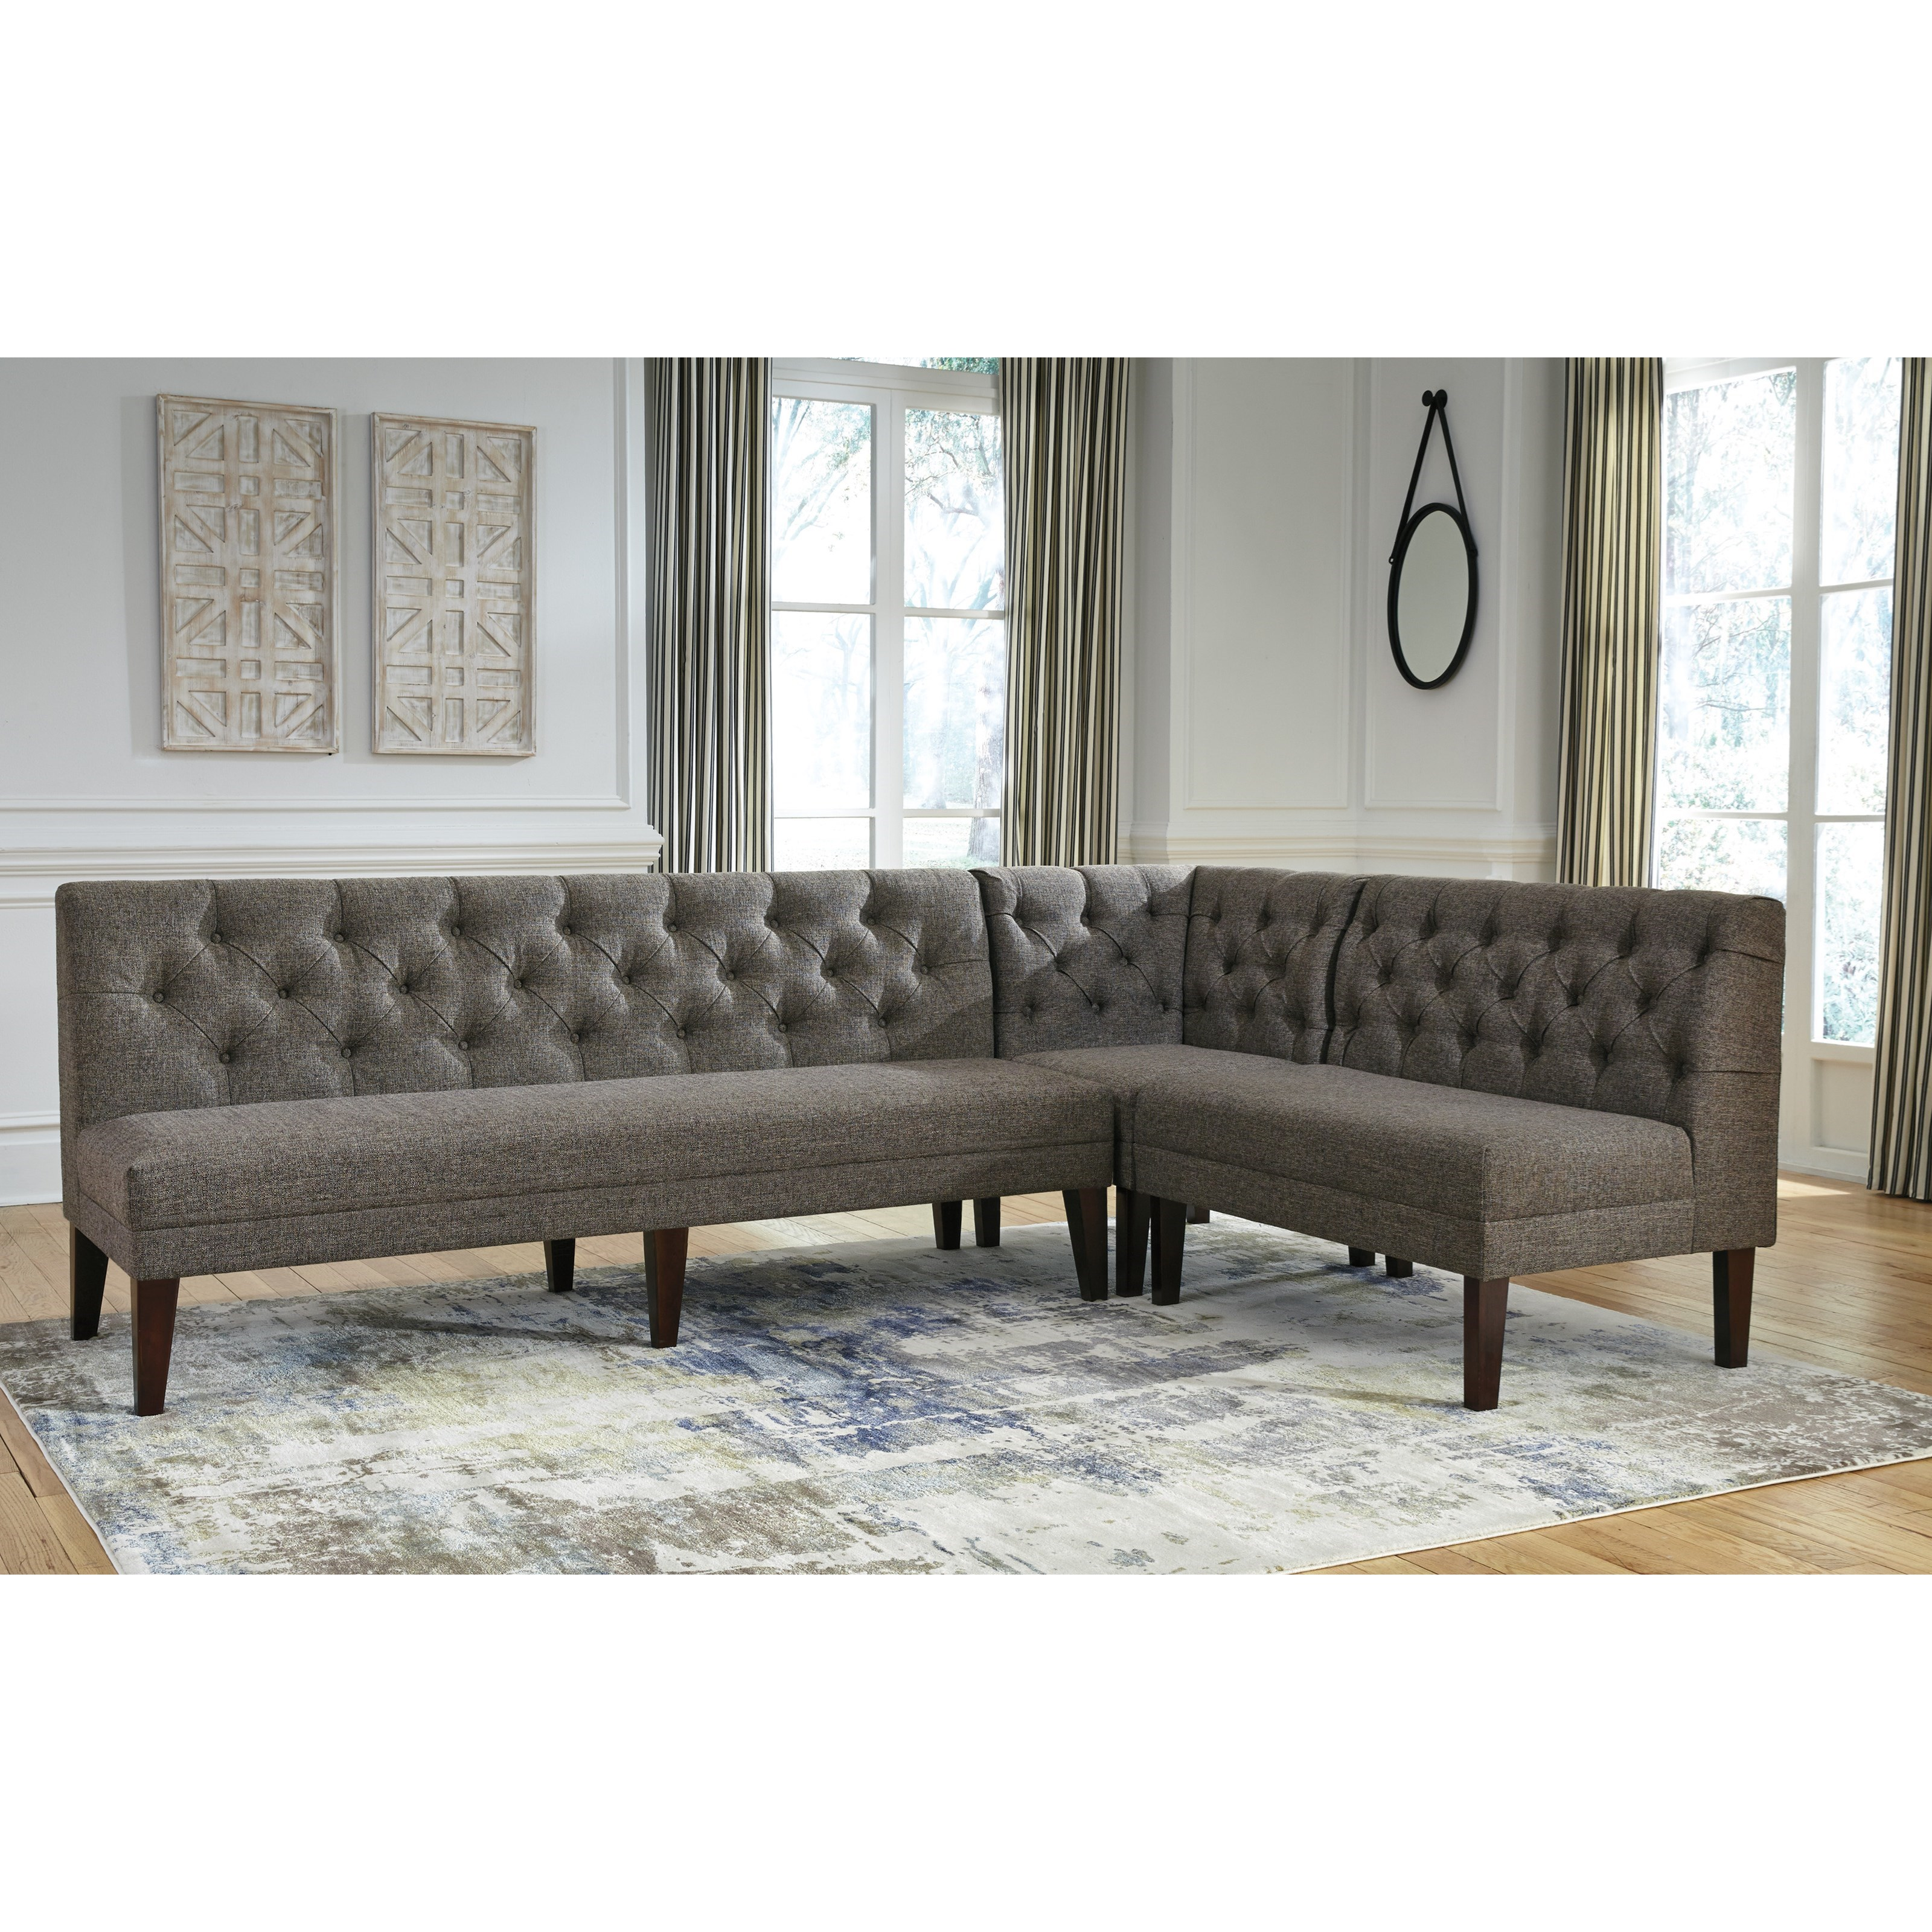 Ashley Furniture Tripton Medium Brown Dining Bench With Corner: Signature Design By Ashley Tripton Extra Large Upholstered